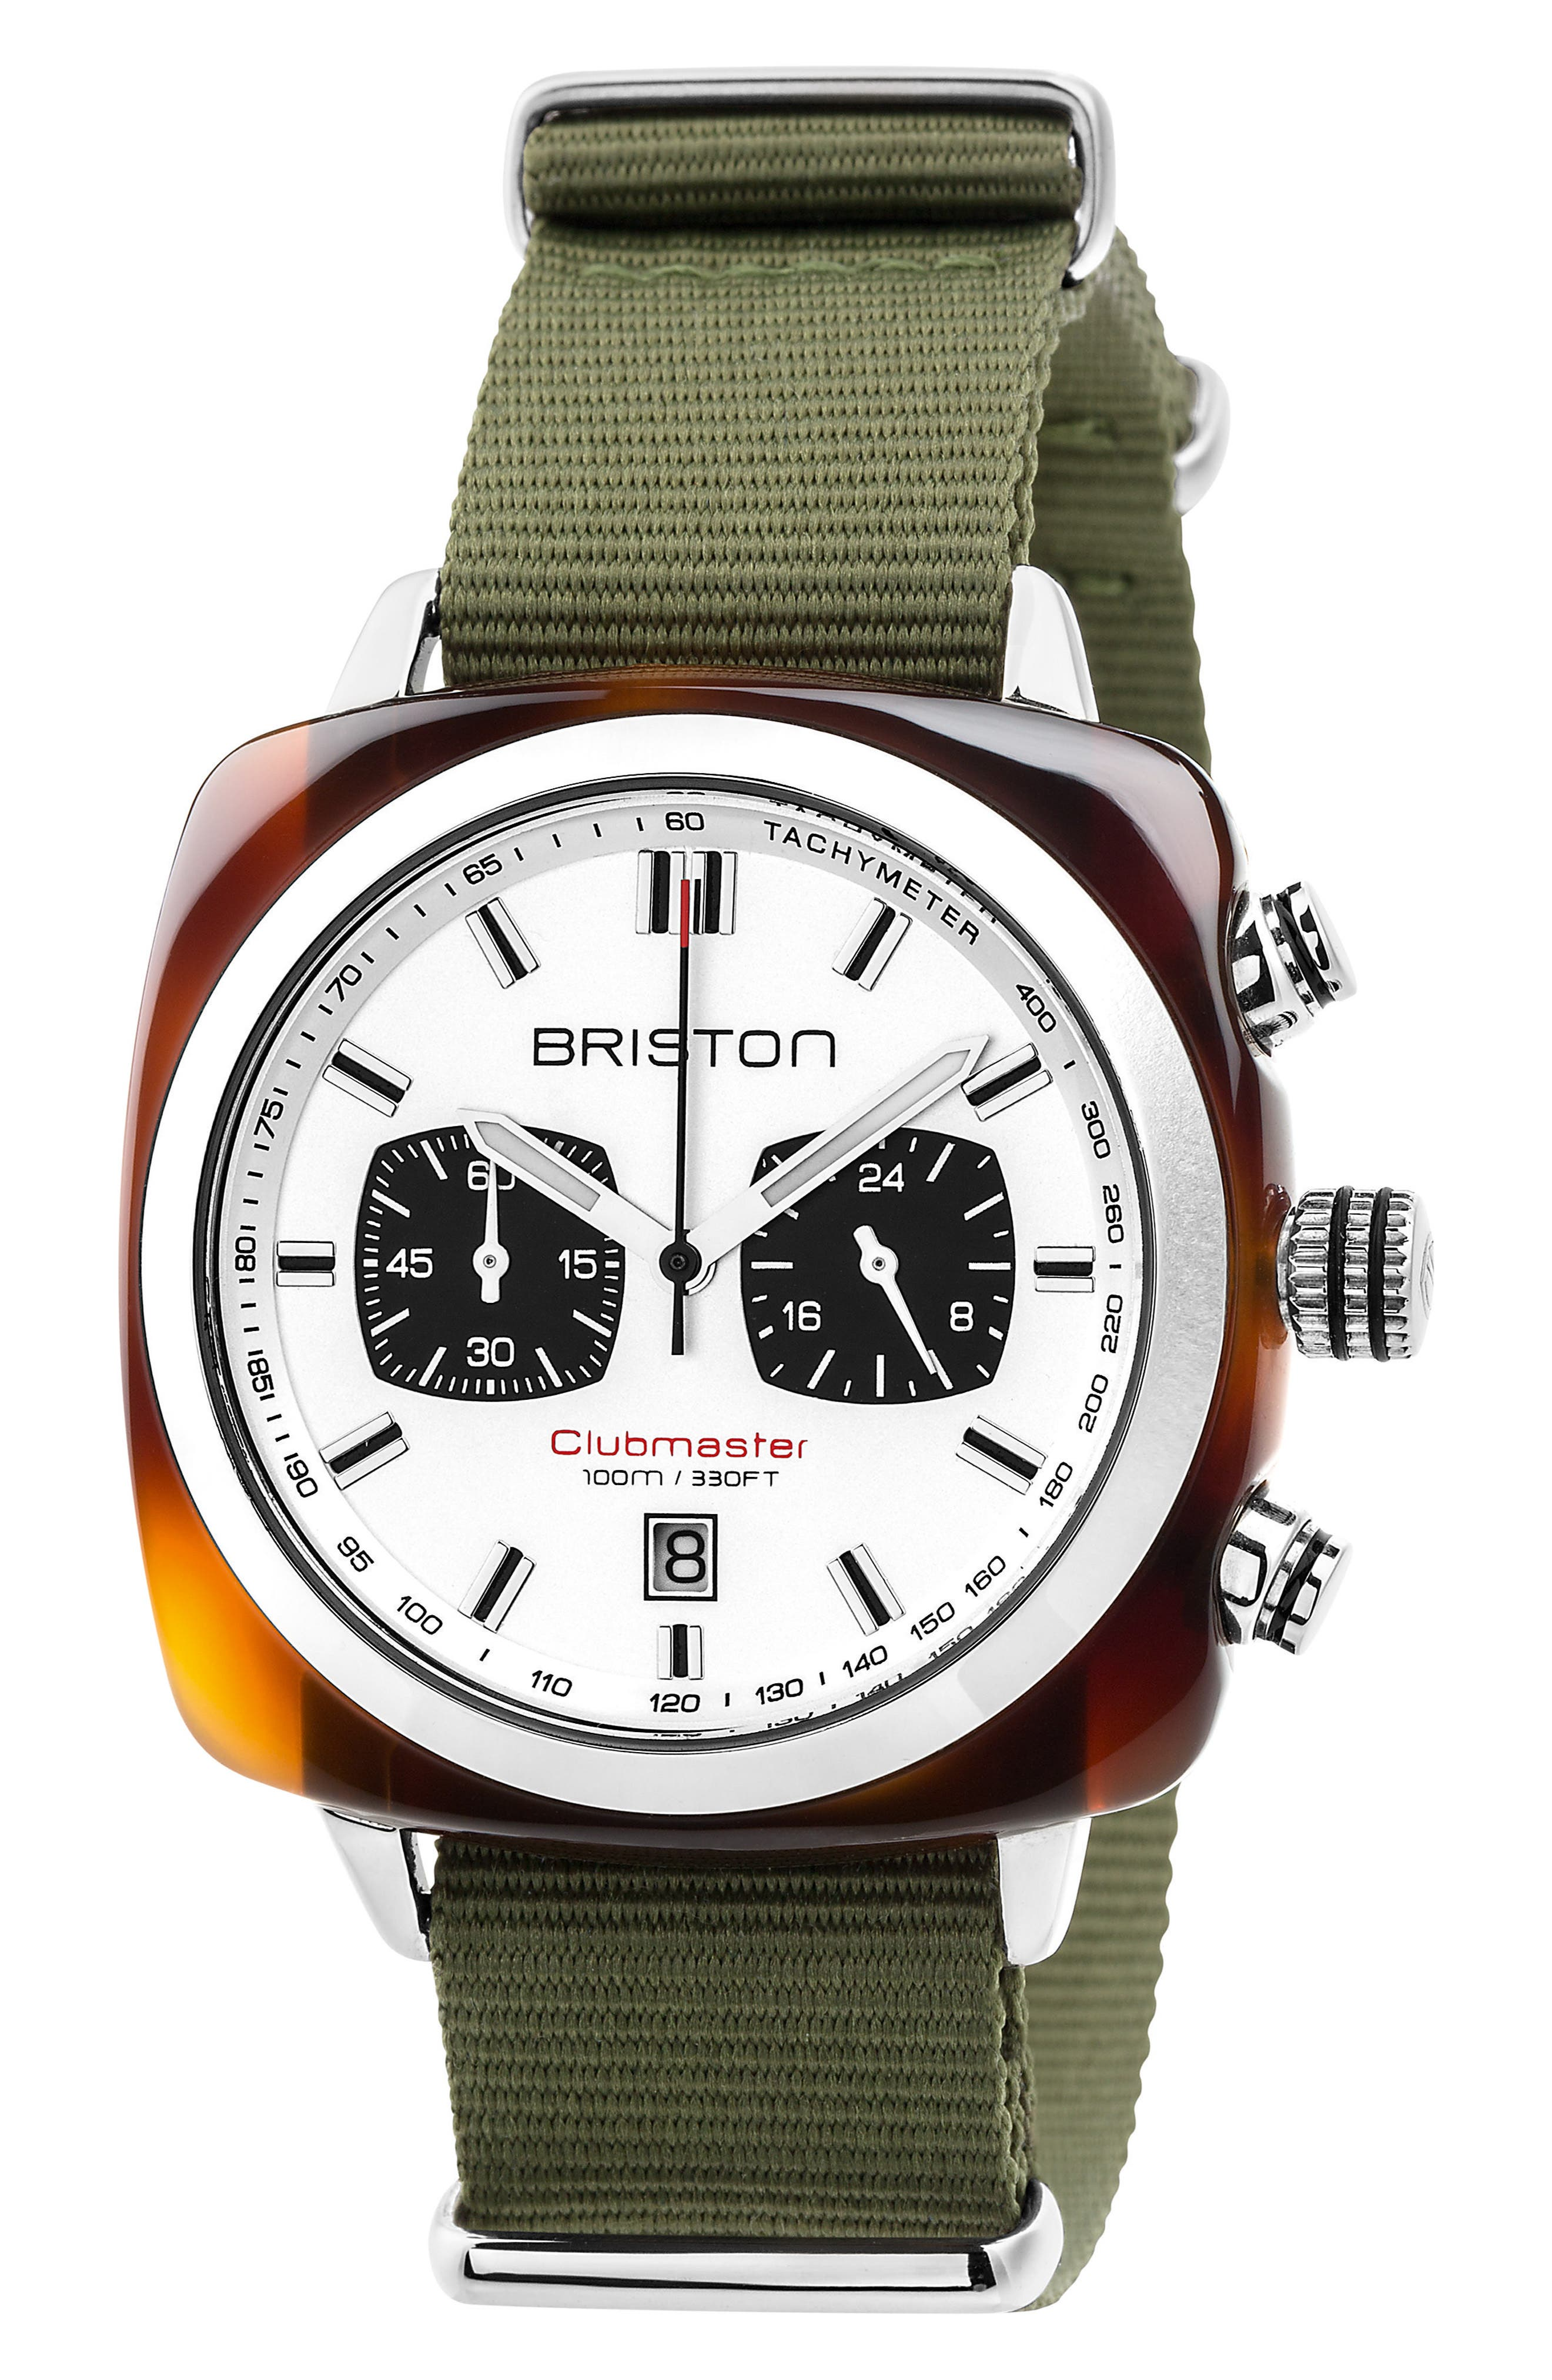 Alternate Image 1 Selected - Briston Watches Clubmaster Sport Chronograph Nylon Strap Watch, 42mm